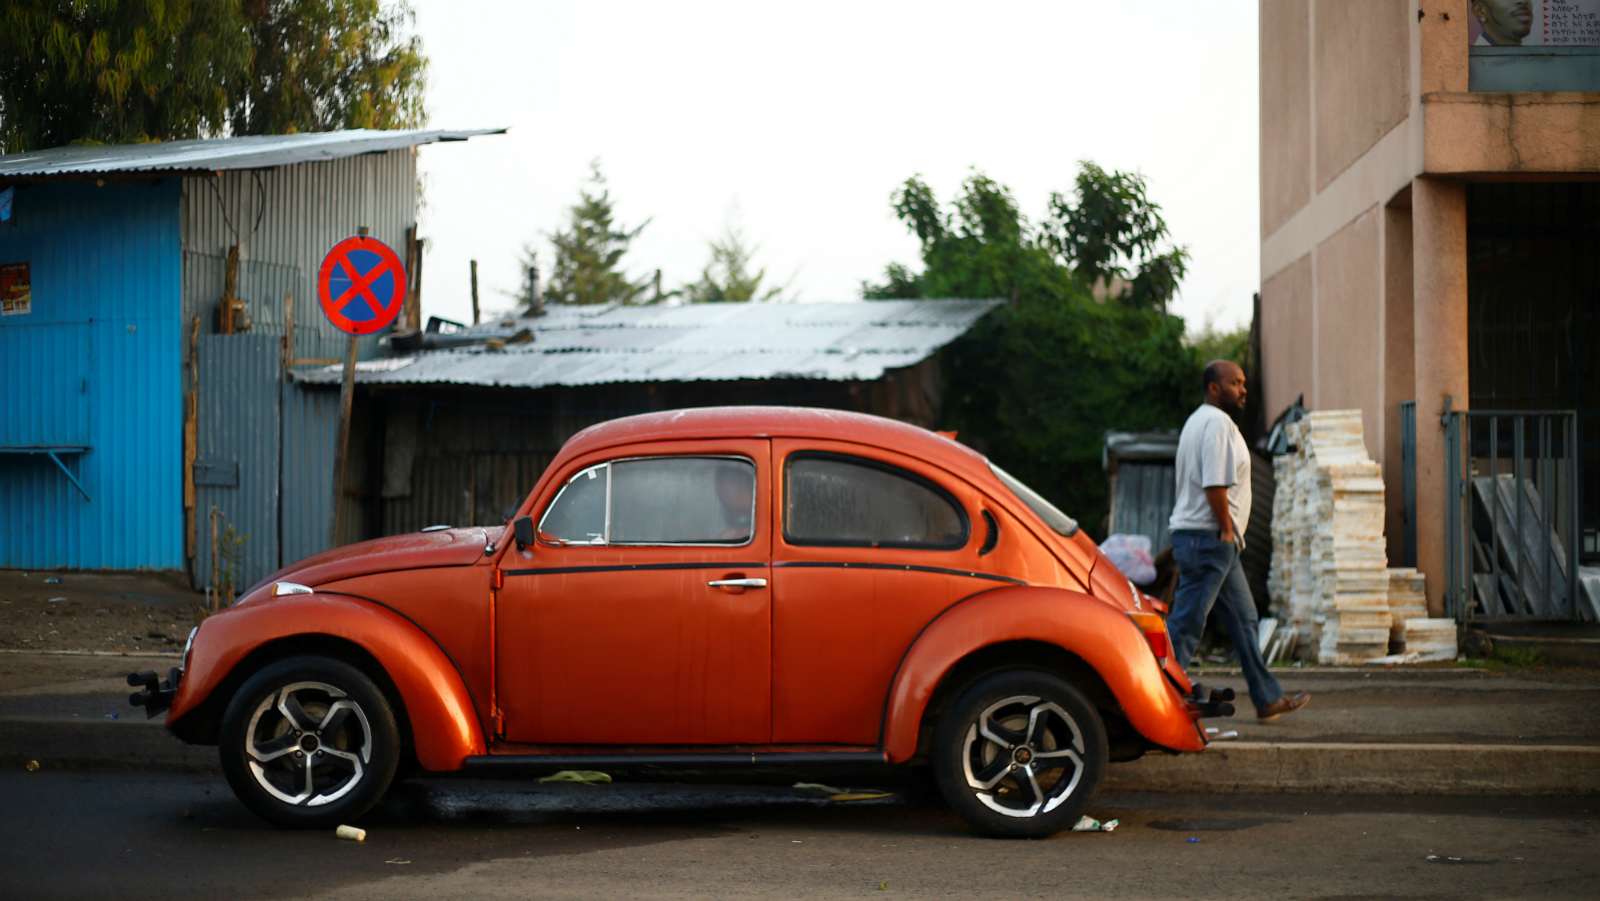 A man walks past a Volkswagen Beetle car parked on a street in Addis Ababa, Ethiopia, September 8, 2017.